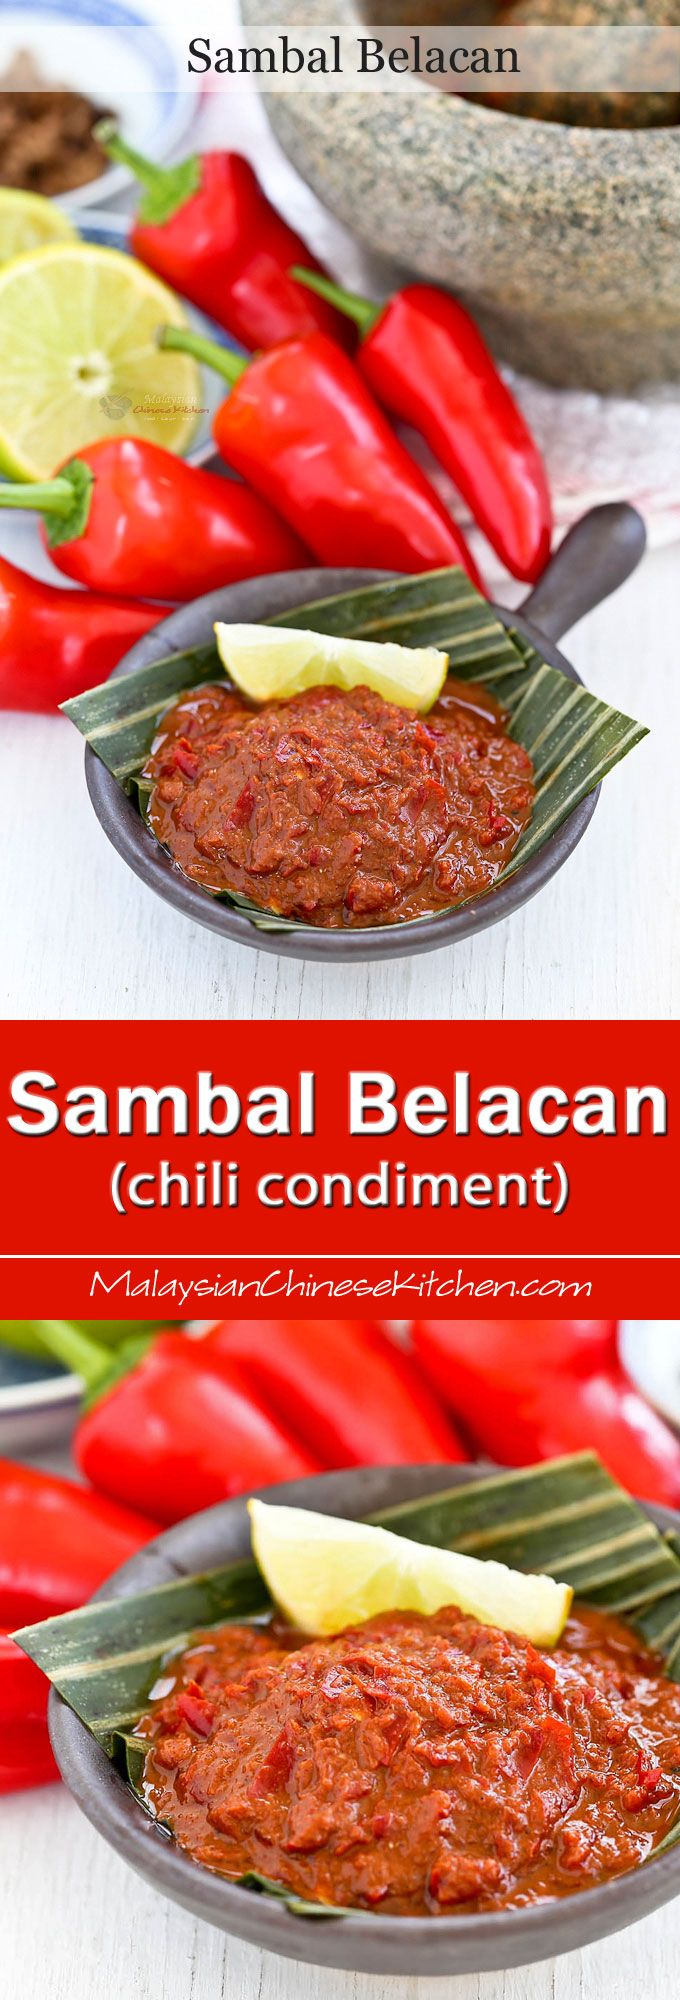 Sambal Belacan is a popular spicy Malaysian chili condiment consisting of chilies, belacan (shrimp paste), and lime juice. It adds zest to all your rice and noodle dishes. | MalaysianChineseKitchen.com